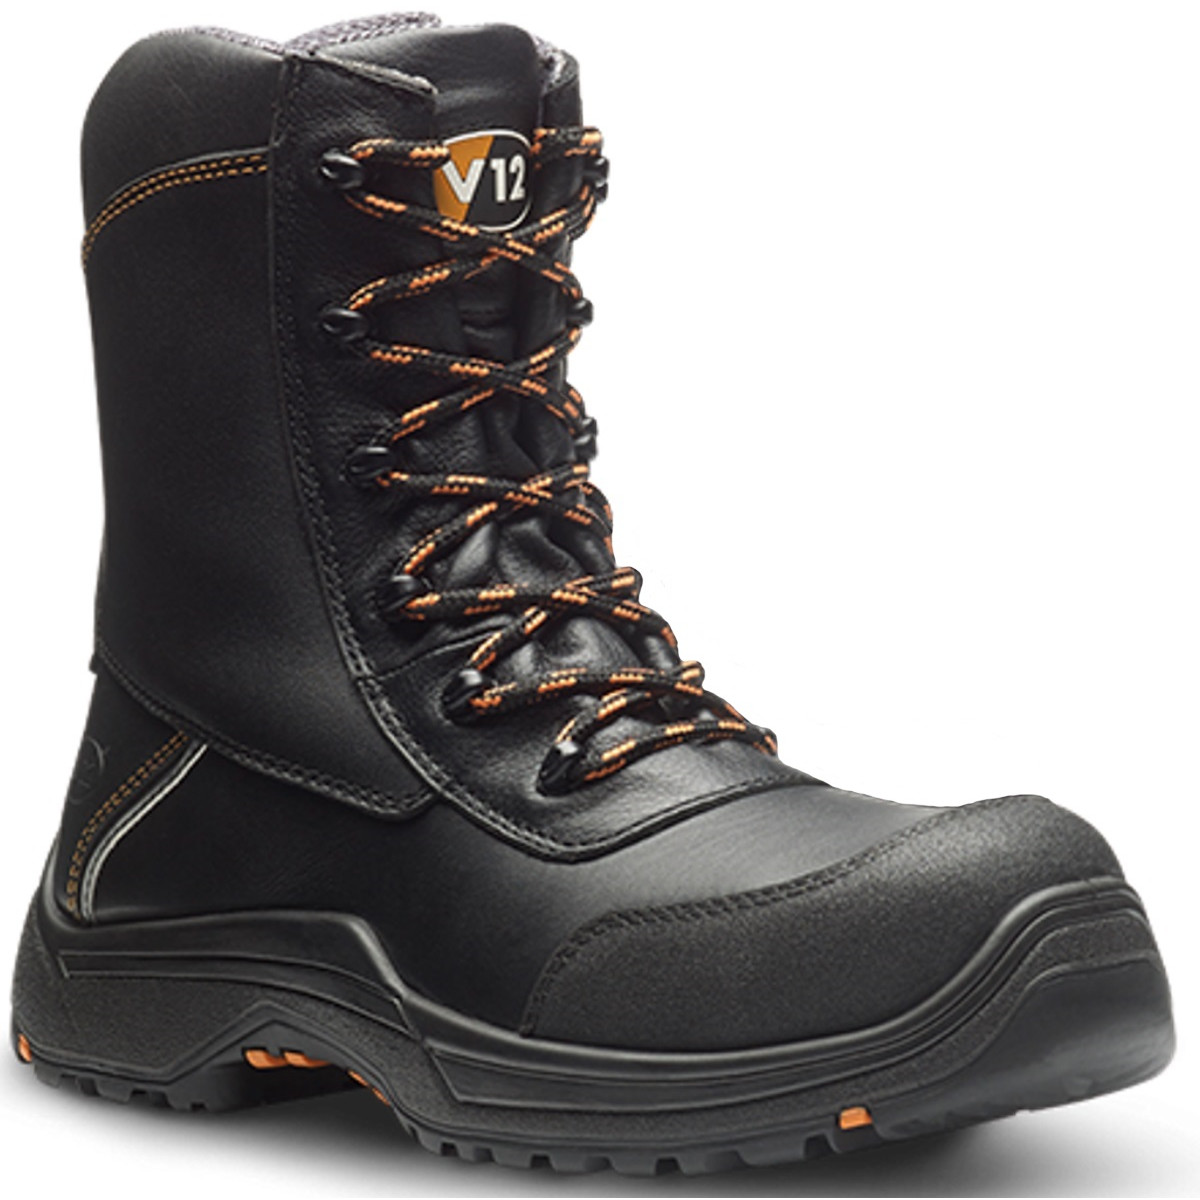 V12 Defiant Igs Safety Boots